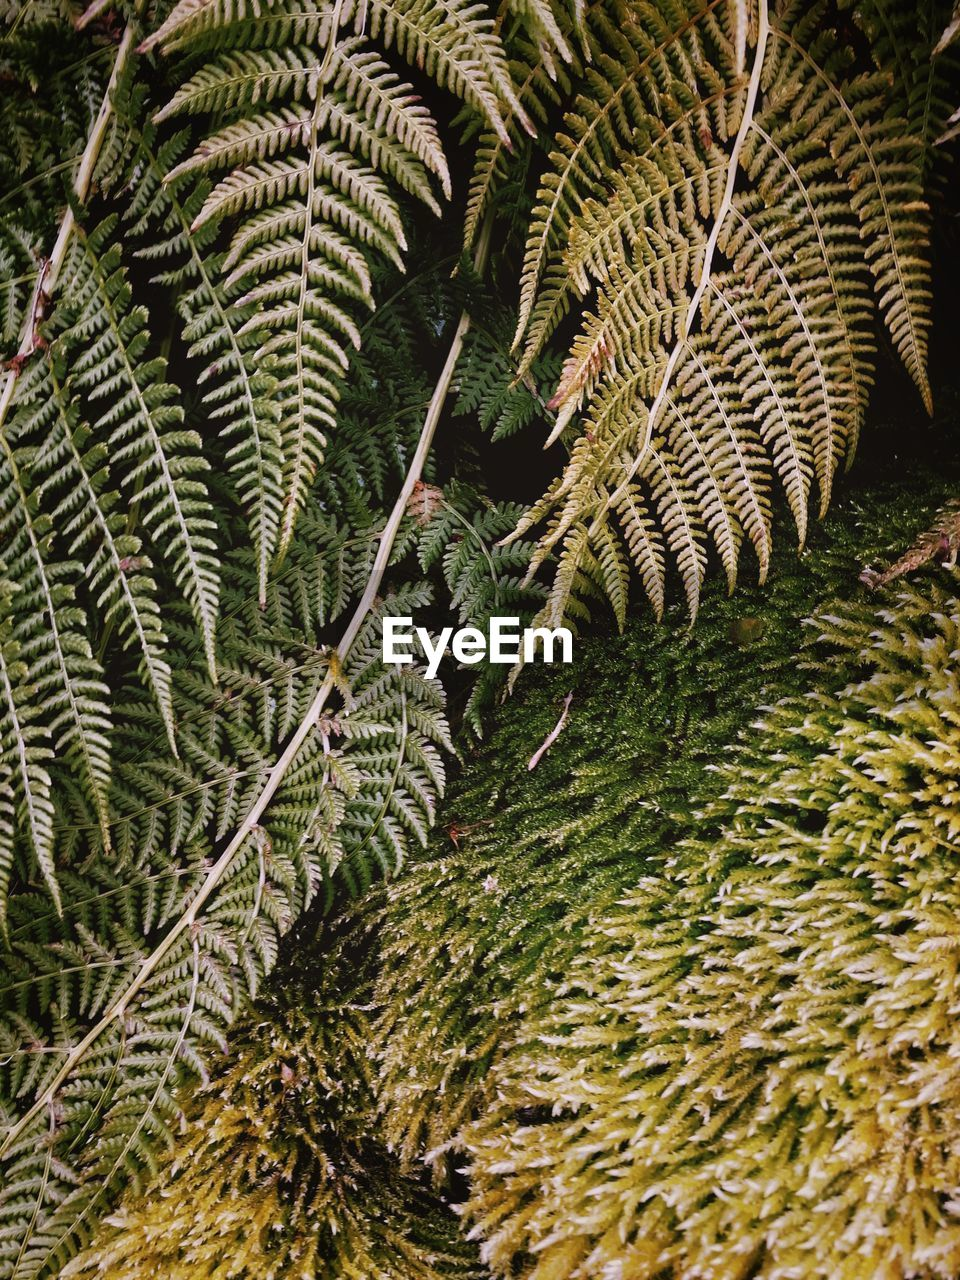 HIGH ANGLE VIEW OF FERN LEAVES ON FIELD